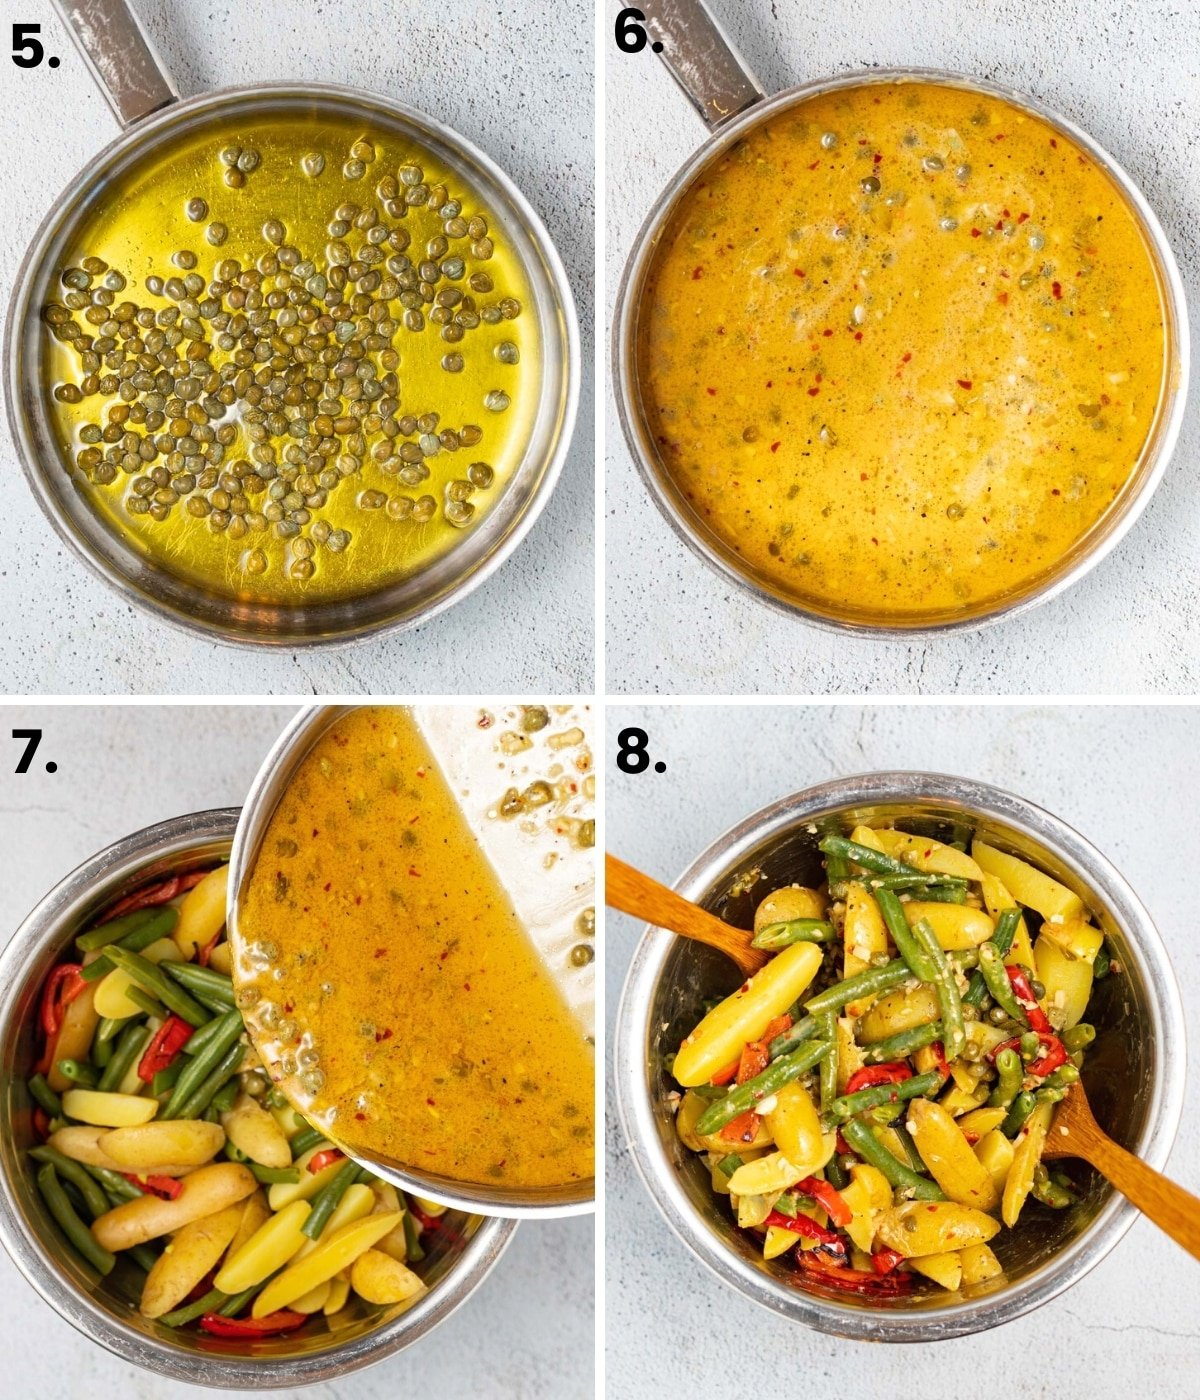 4 images: capers and olive oil in a pan, finished vinaigrette in a pan, pouring the vinaigrette over the potatoes, beans and peppers, tossing them together in a bowl.